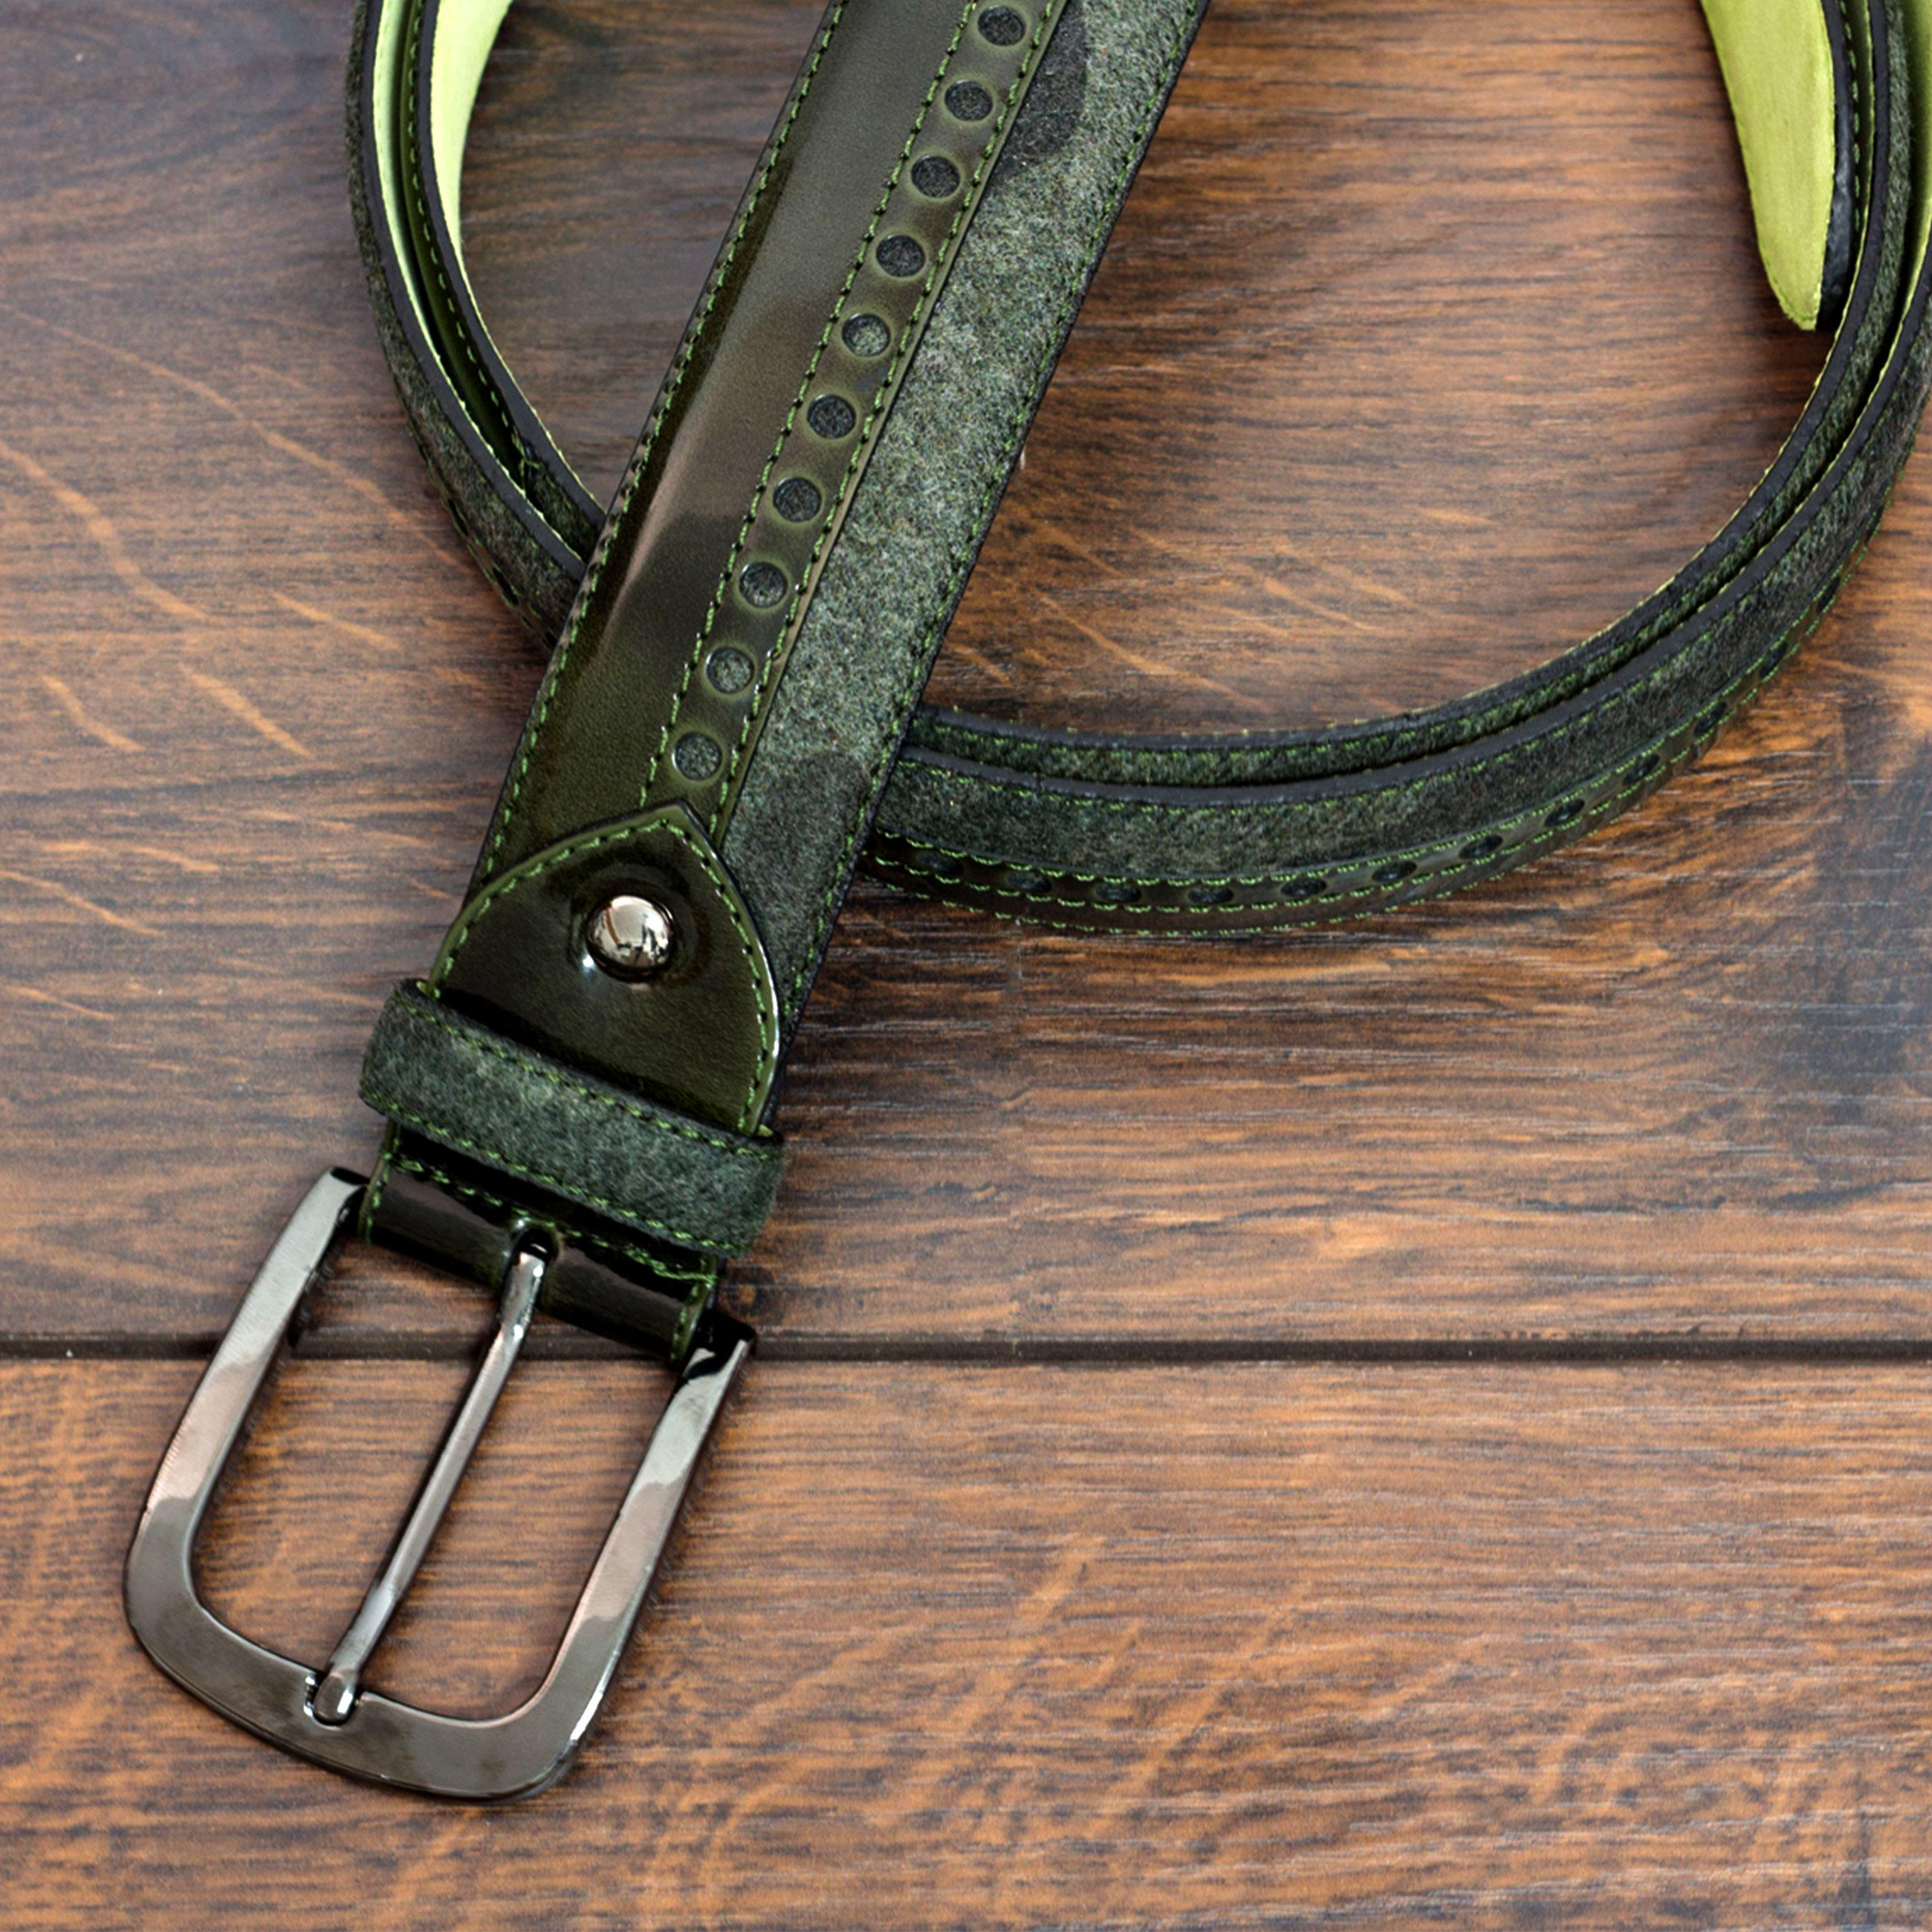 Manor of London 'SunValley' Green Polished Calfskin & Camo Flannel Belt Luxury Mens Belt Leather Buckle Close Up view